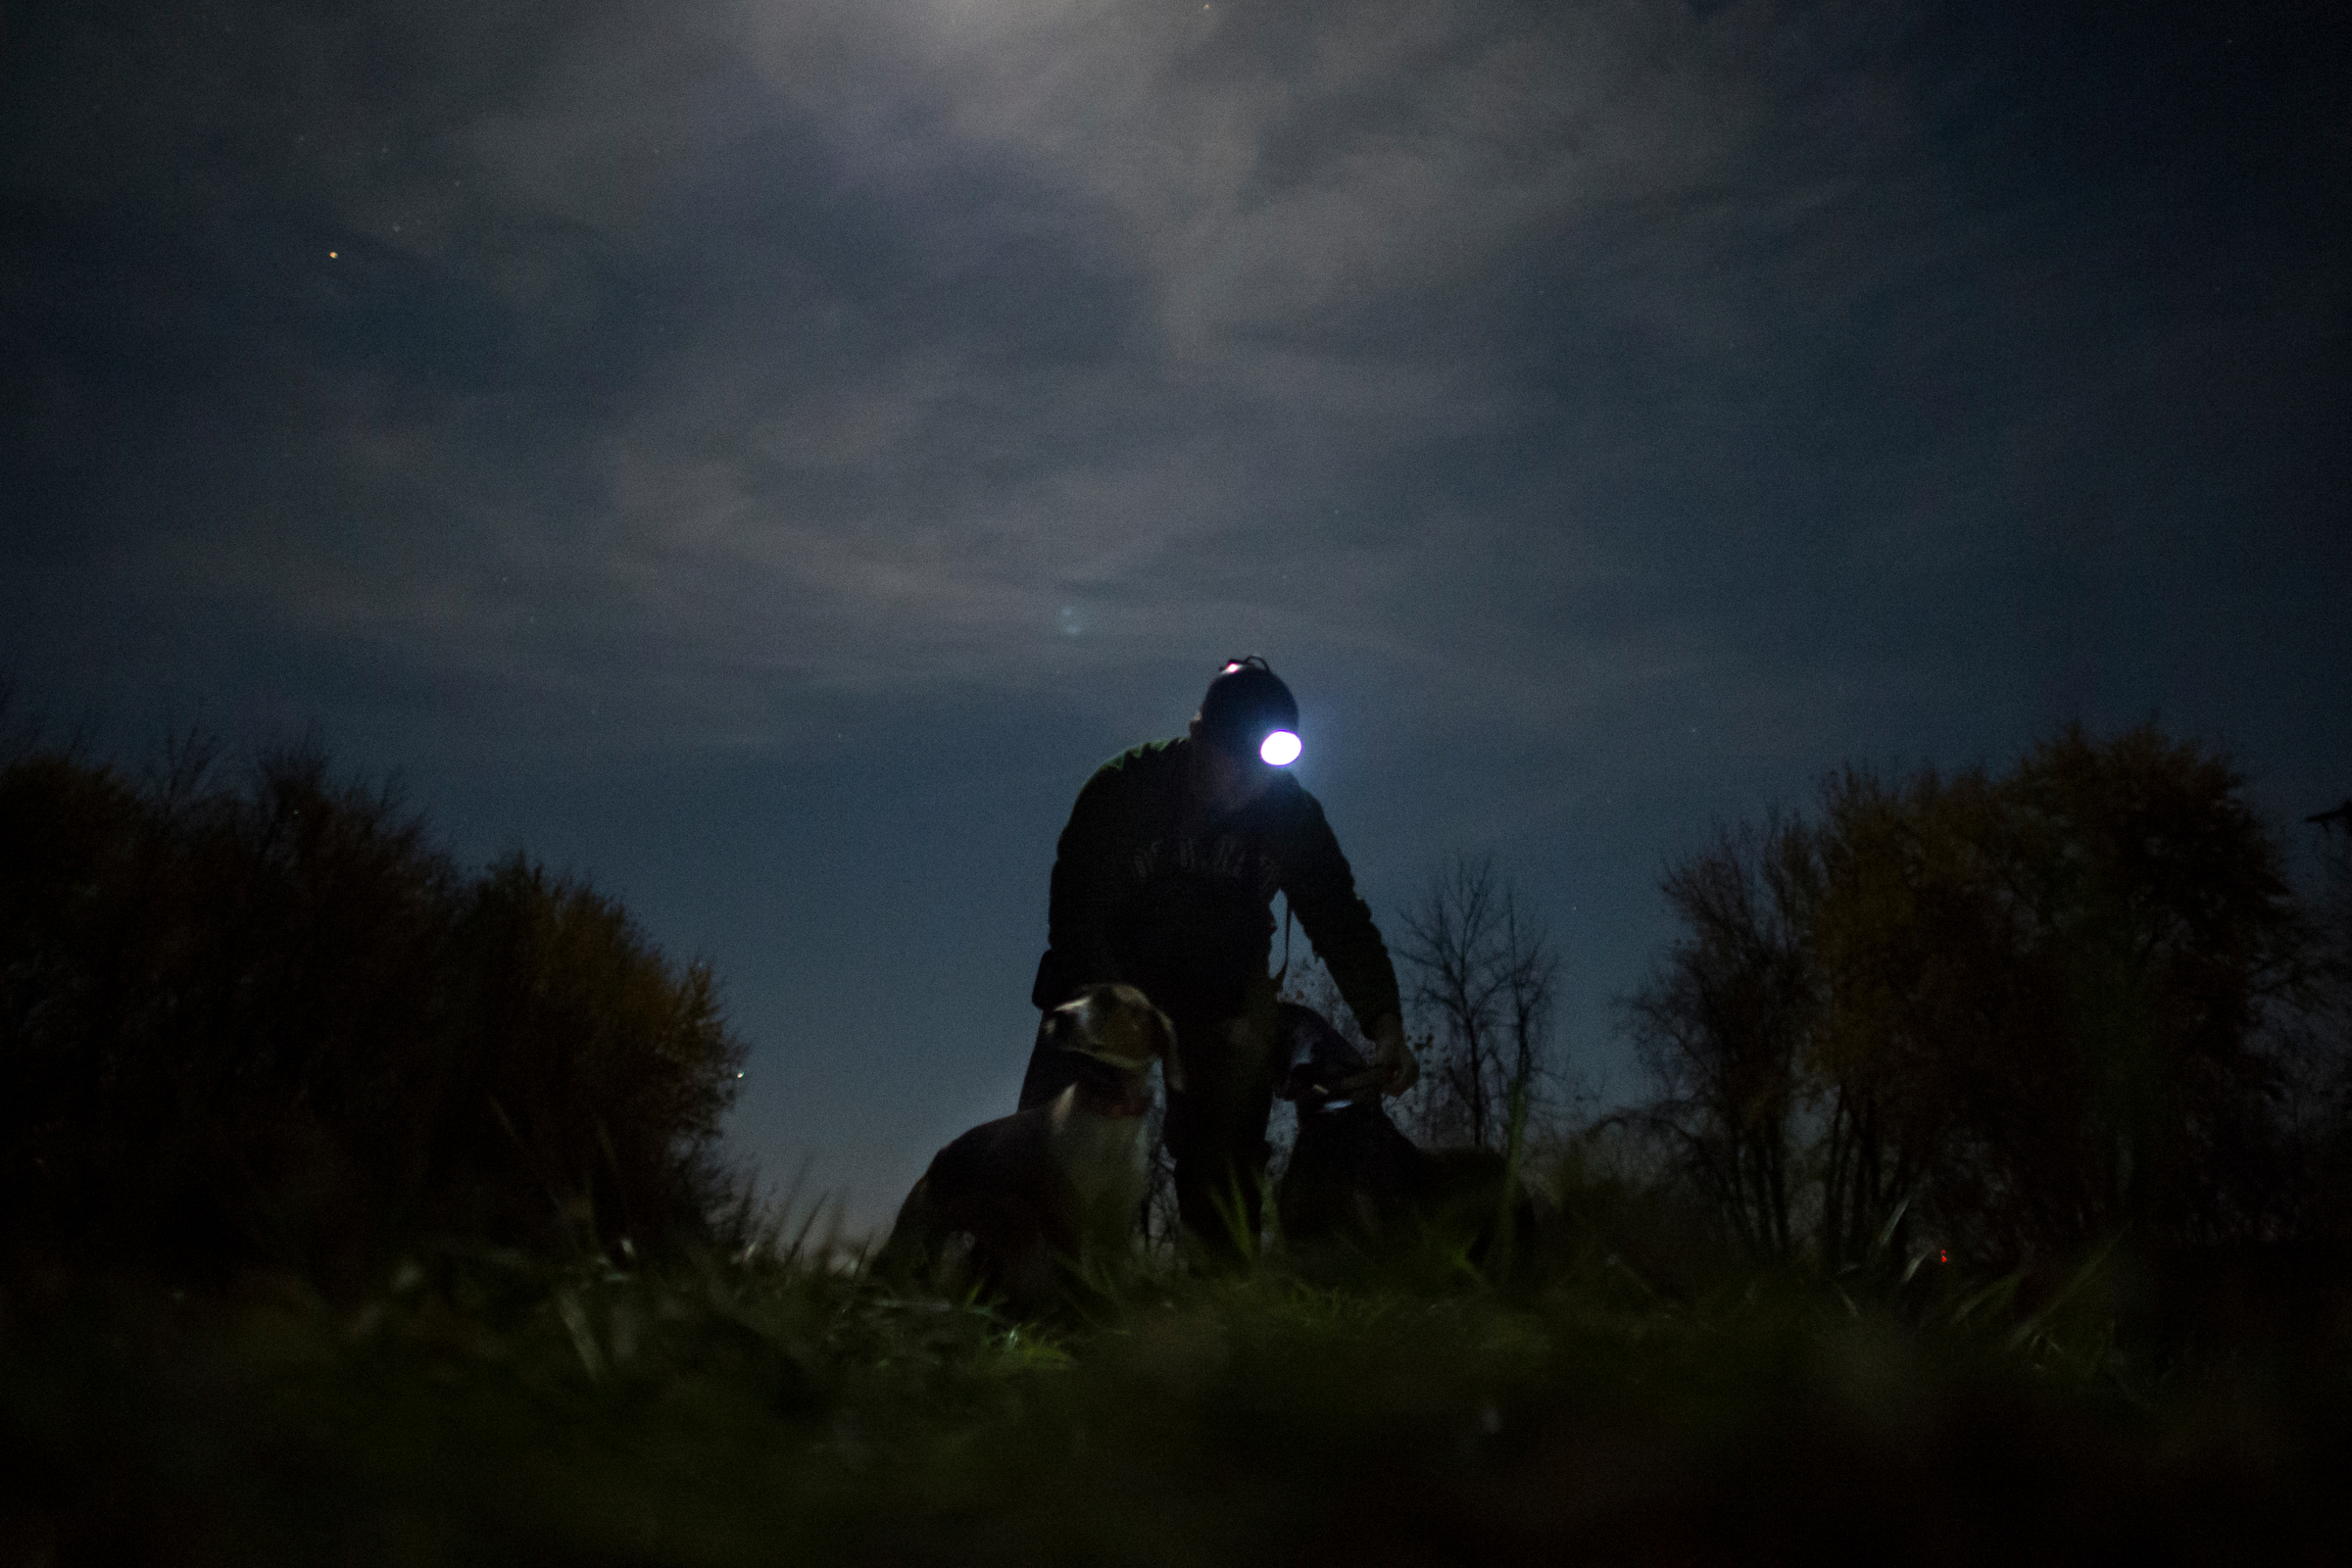 Josh Hoffman prepares to release two dogs under the high full moon in late November, 2014.